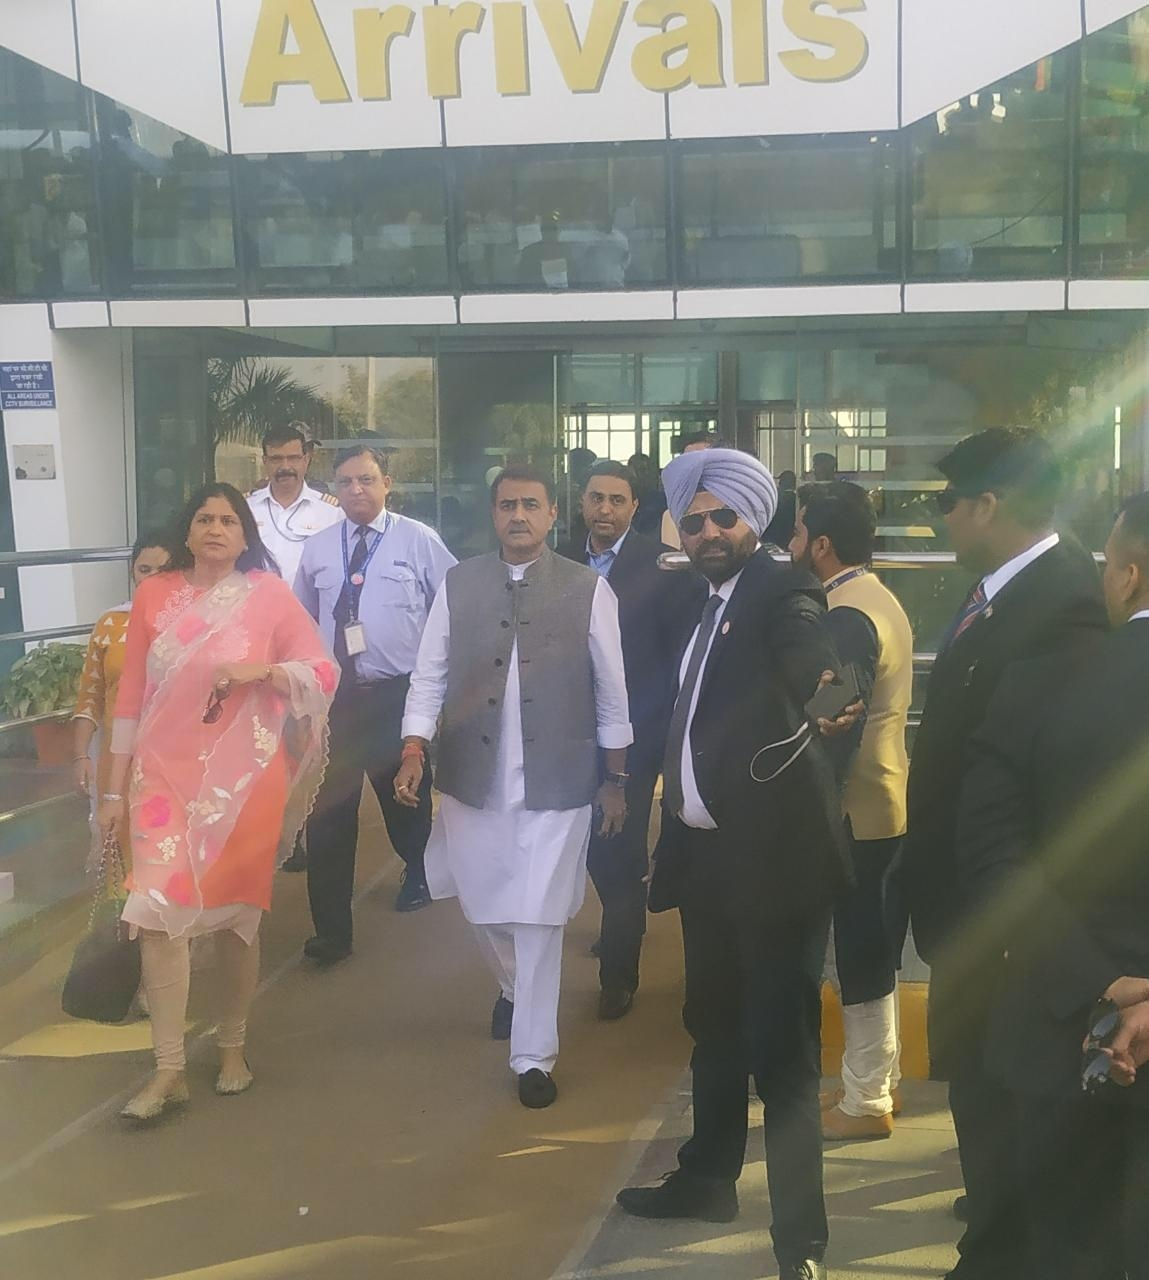 Former union minister Praful Patel arrives at the Udaipur Airport with his wife.